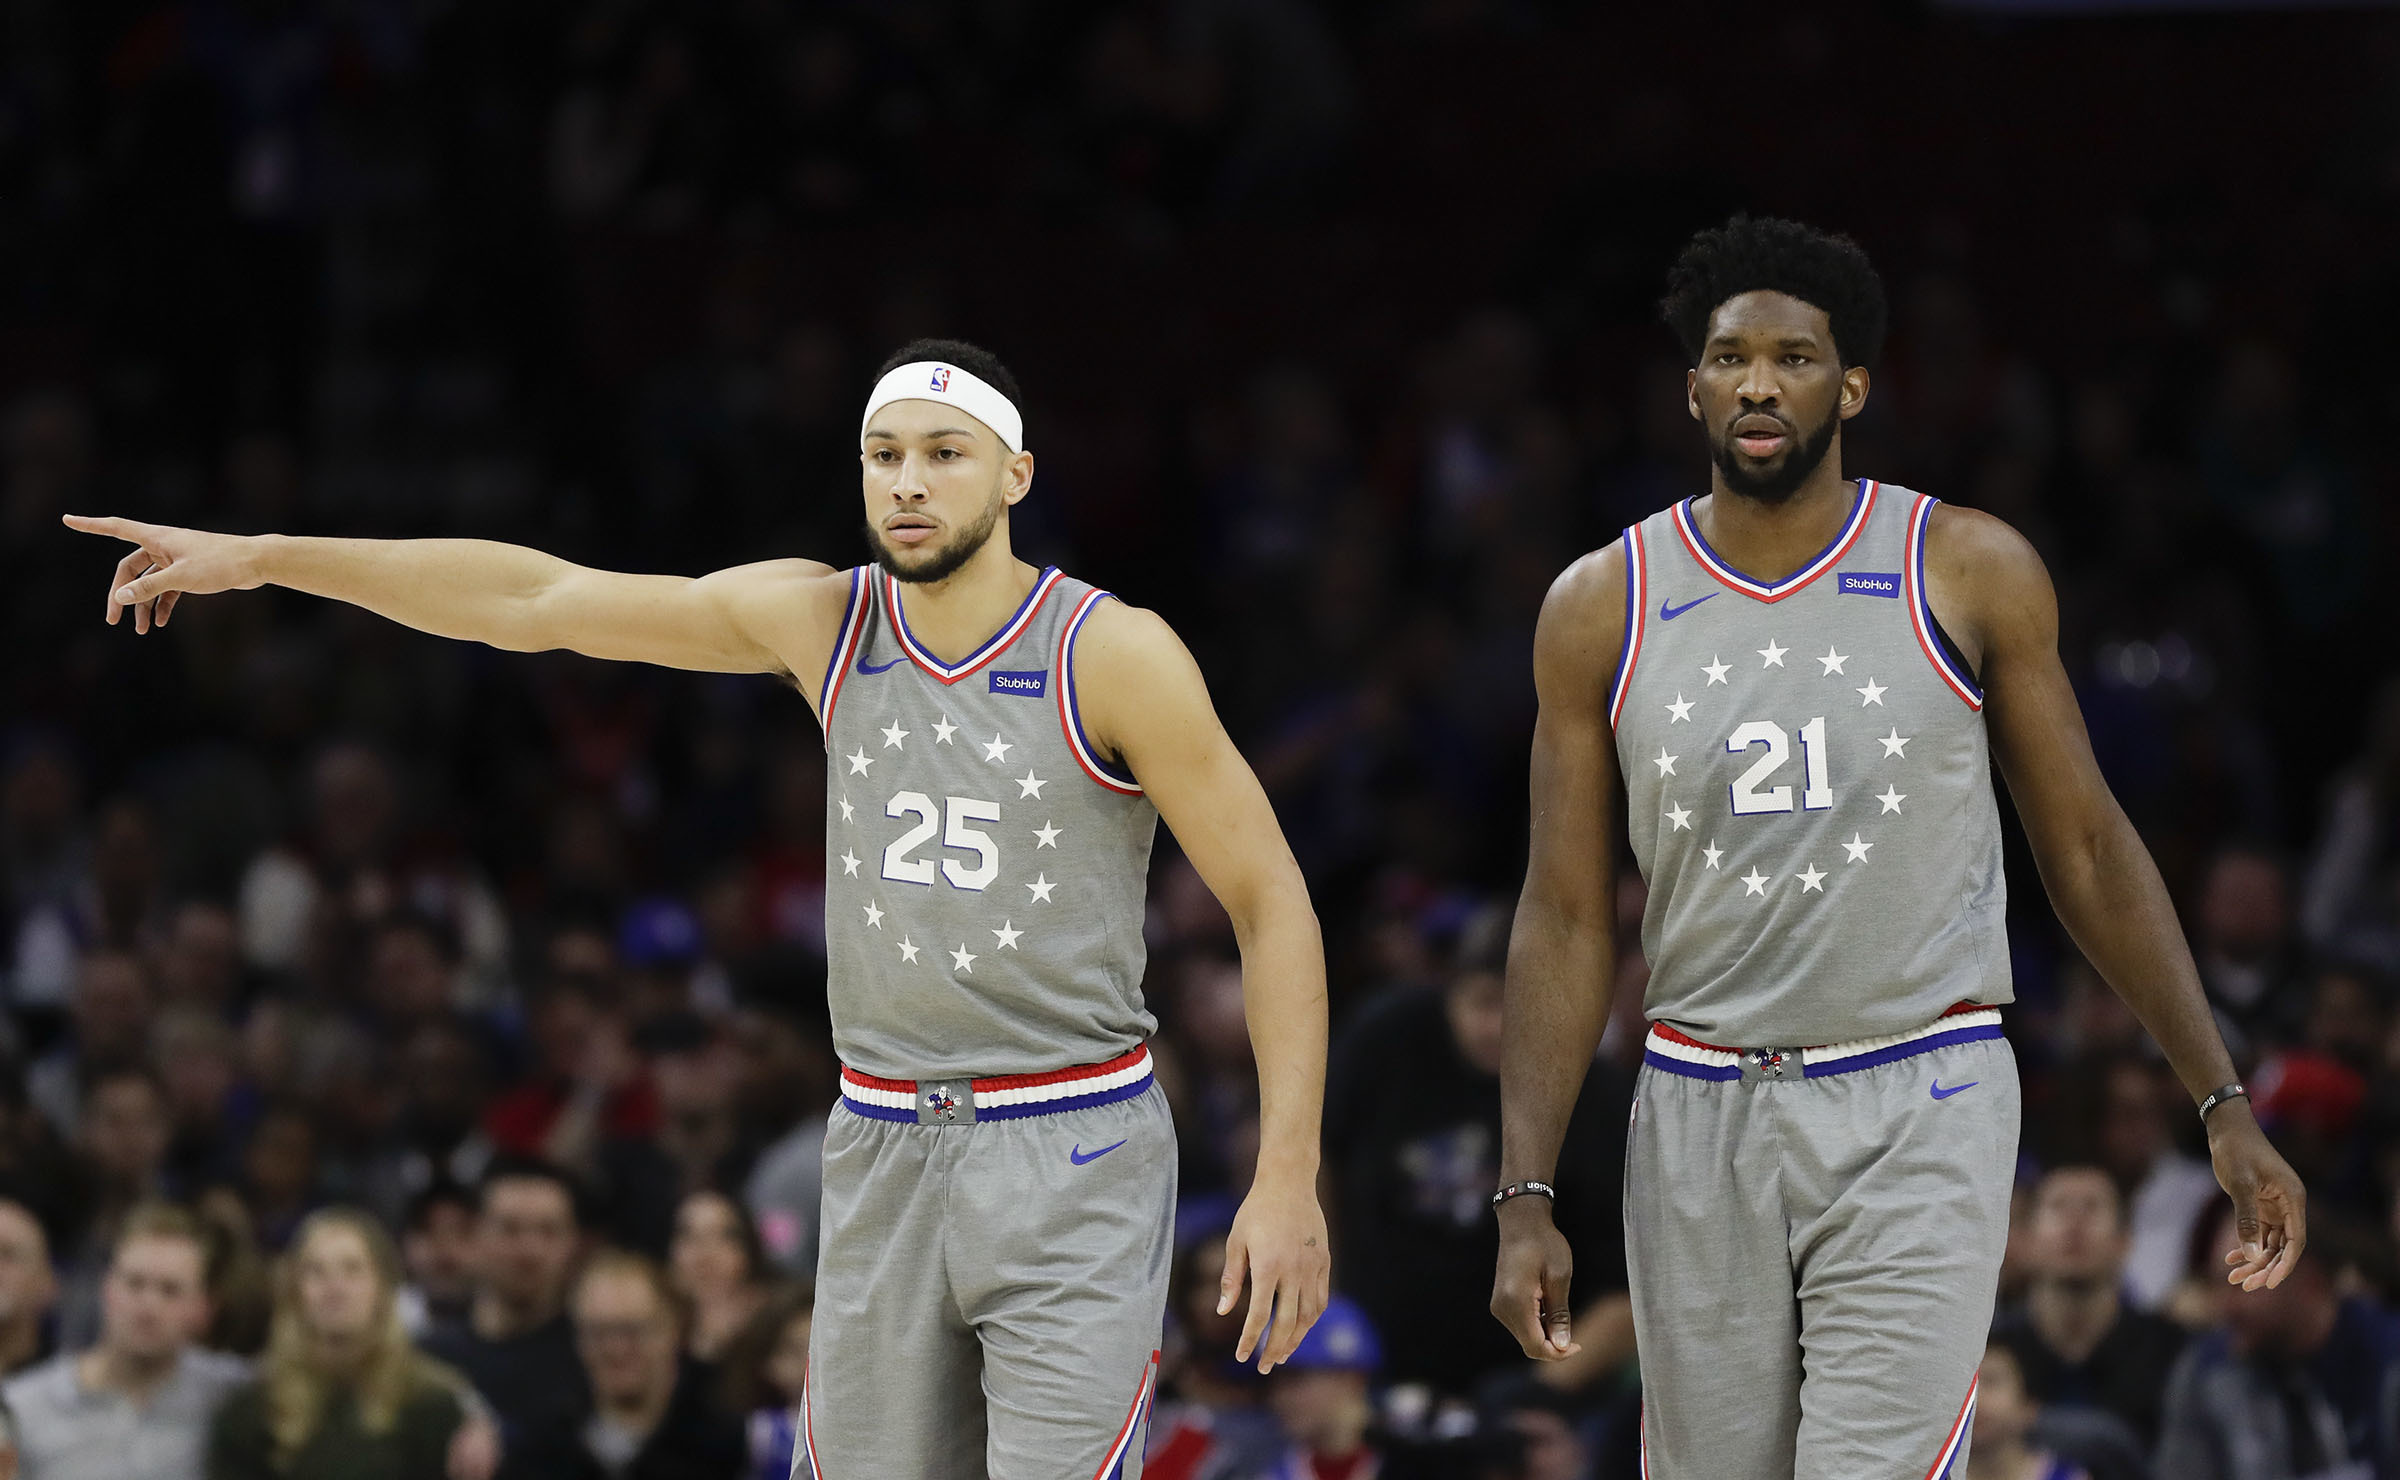 brand new 5af7d 44972 Sixers receive 'Earned Edition' uniforms in honor of playoff ...